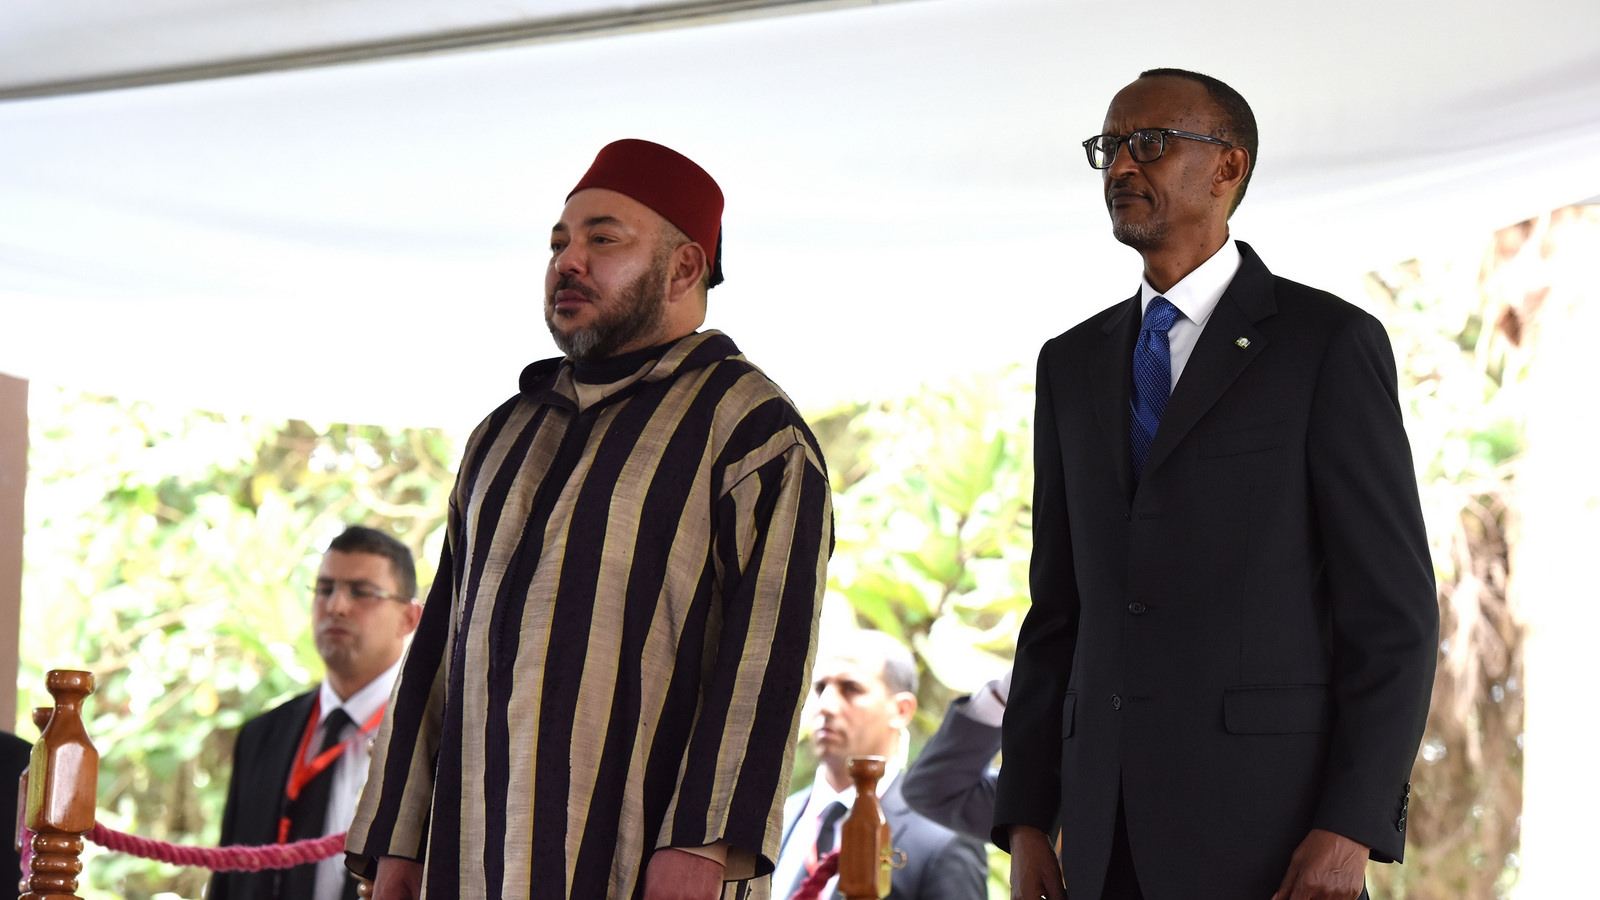 Morocco's King Encourages, Supports Reform Process of African Union